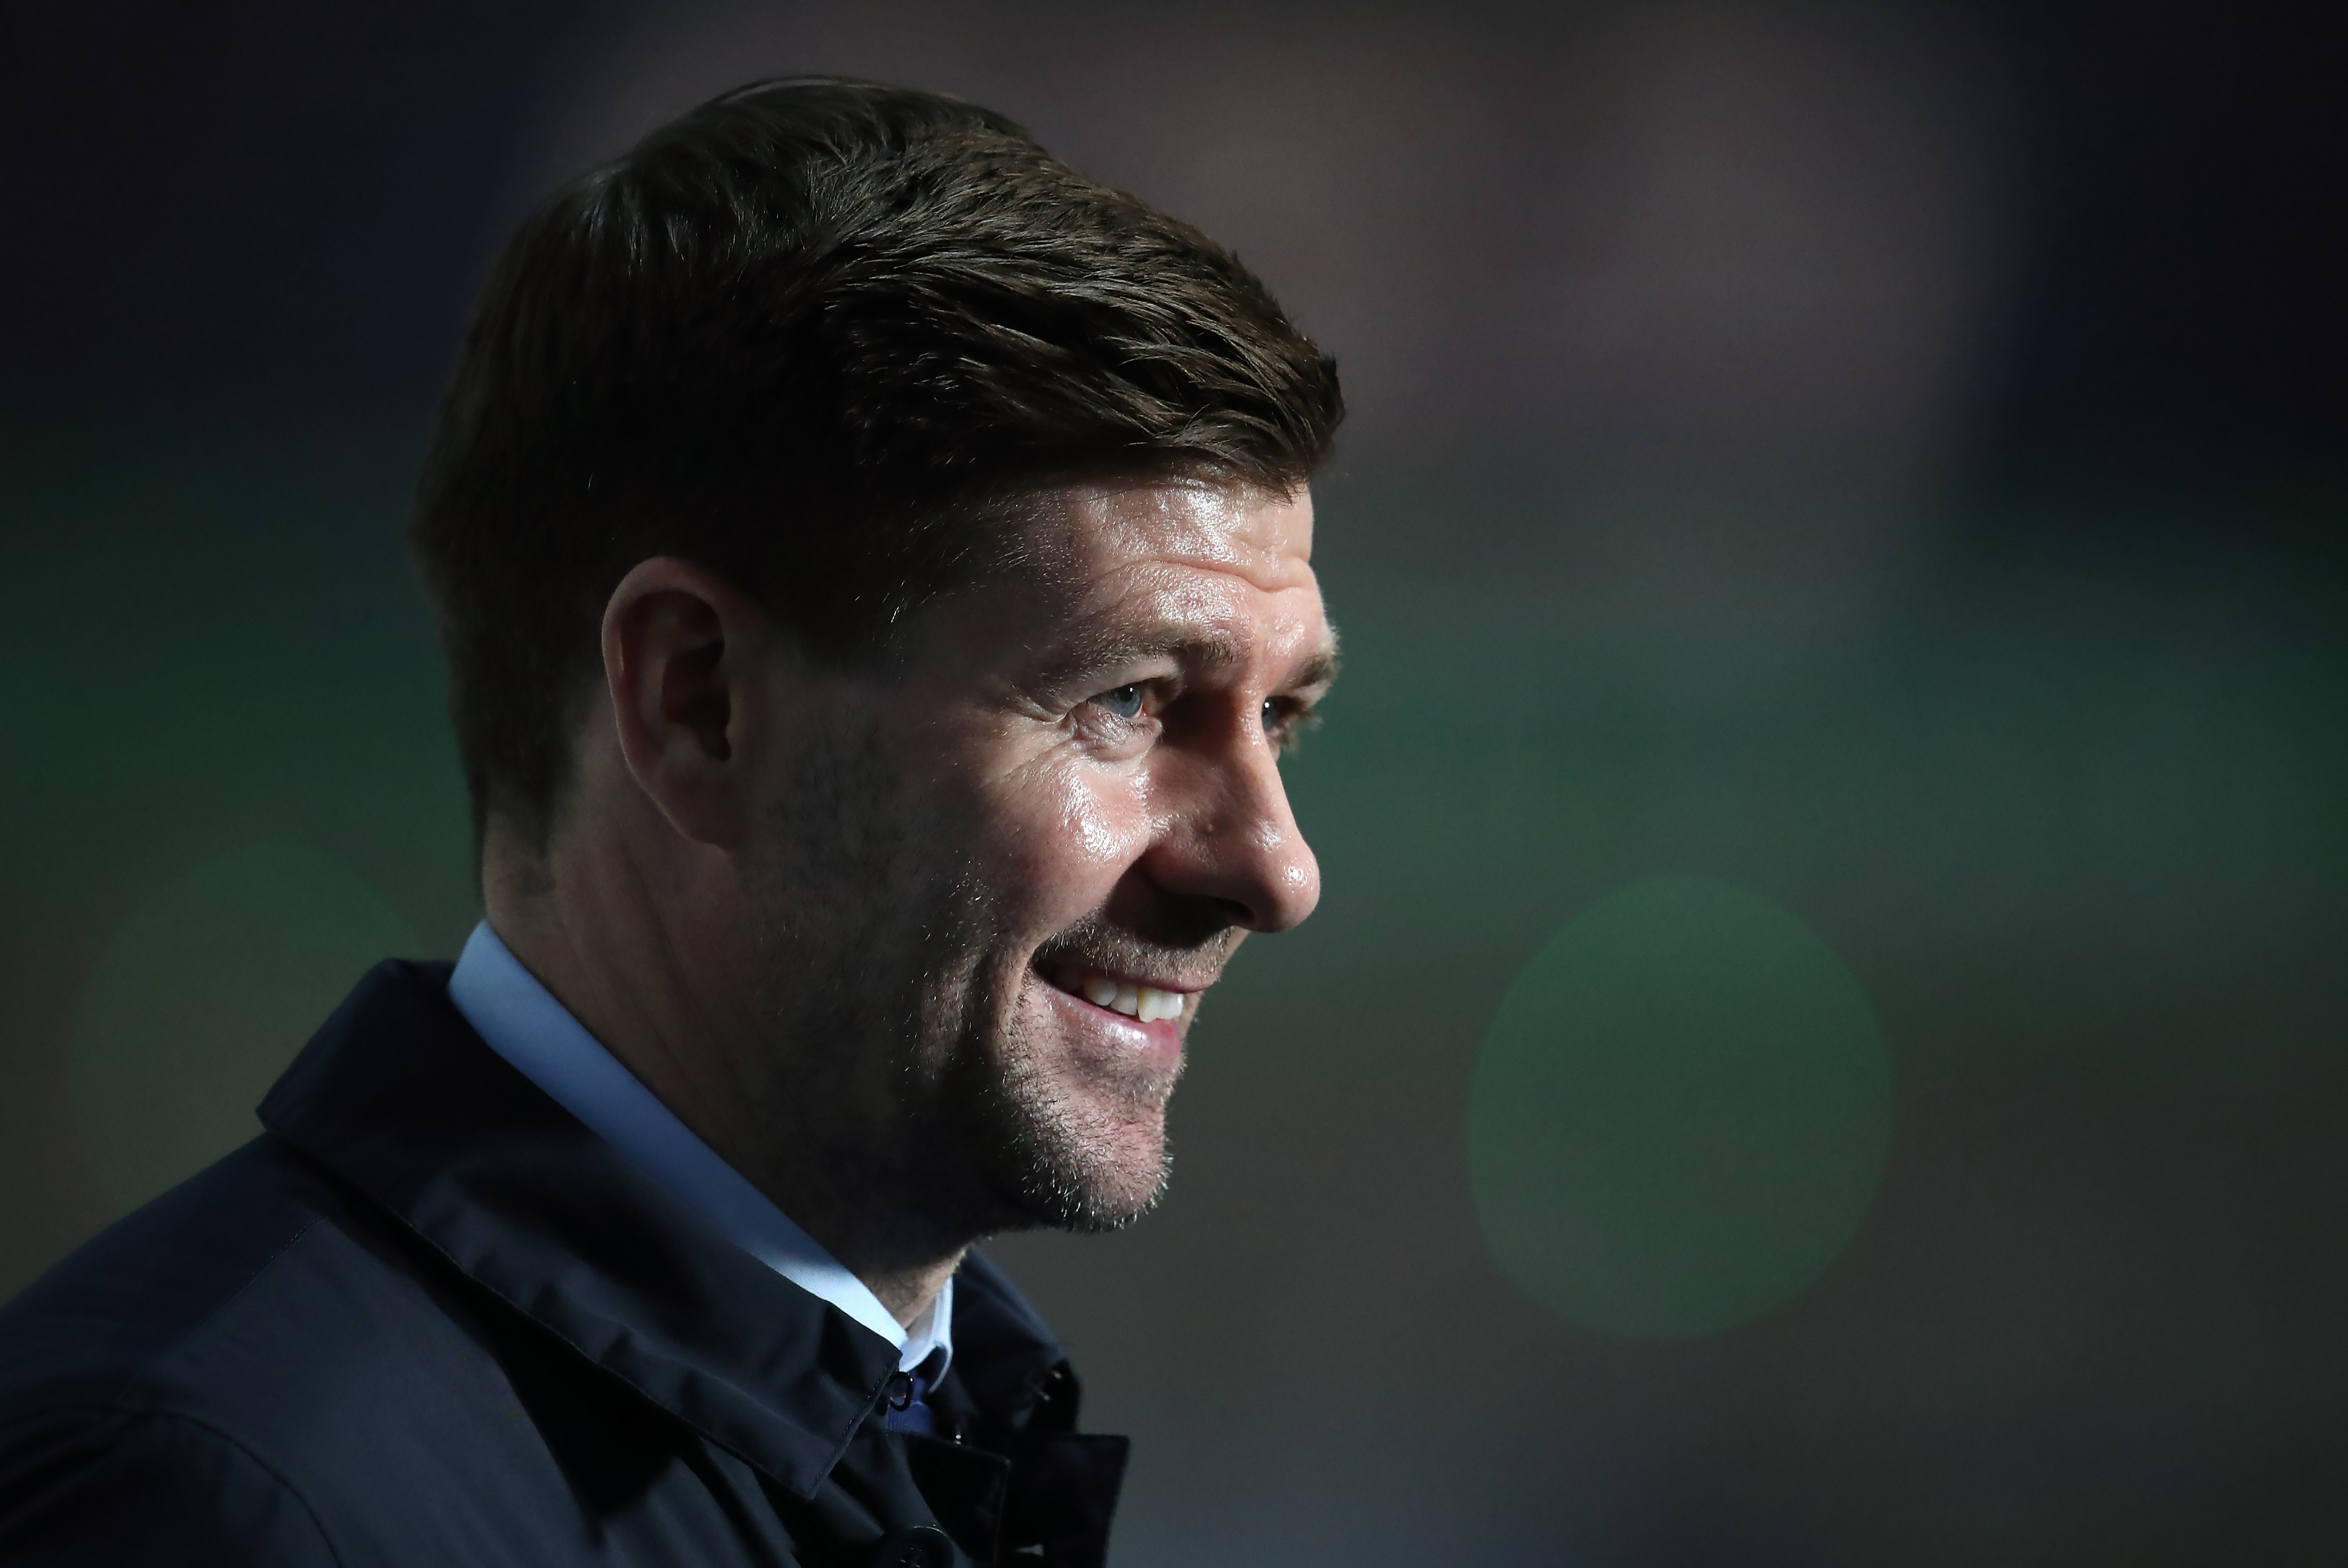 Steven Gerrard admits the future looks bright after Rangers ease past Falkirk